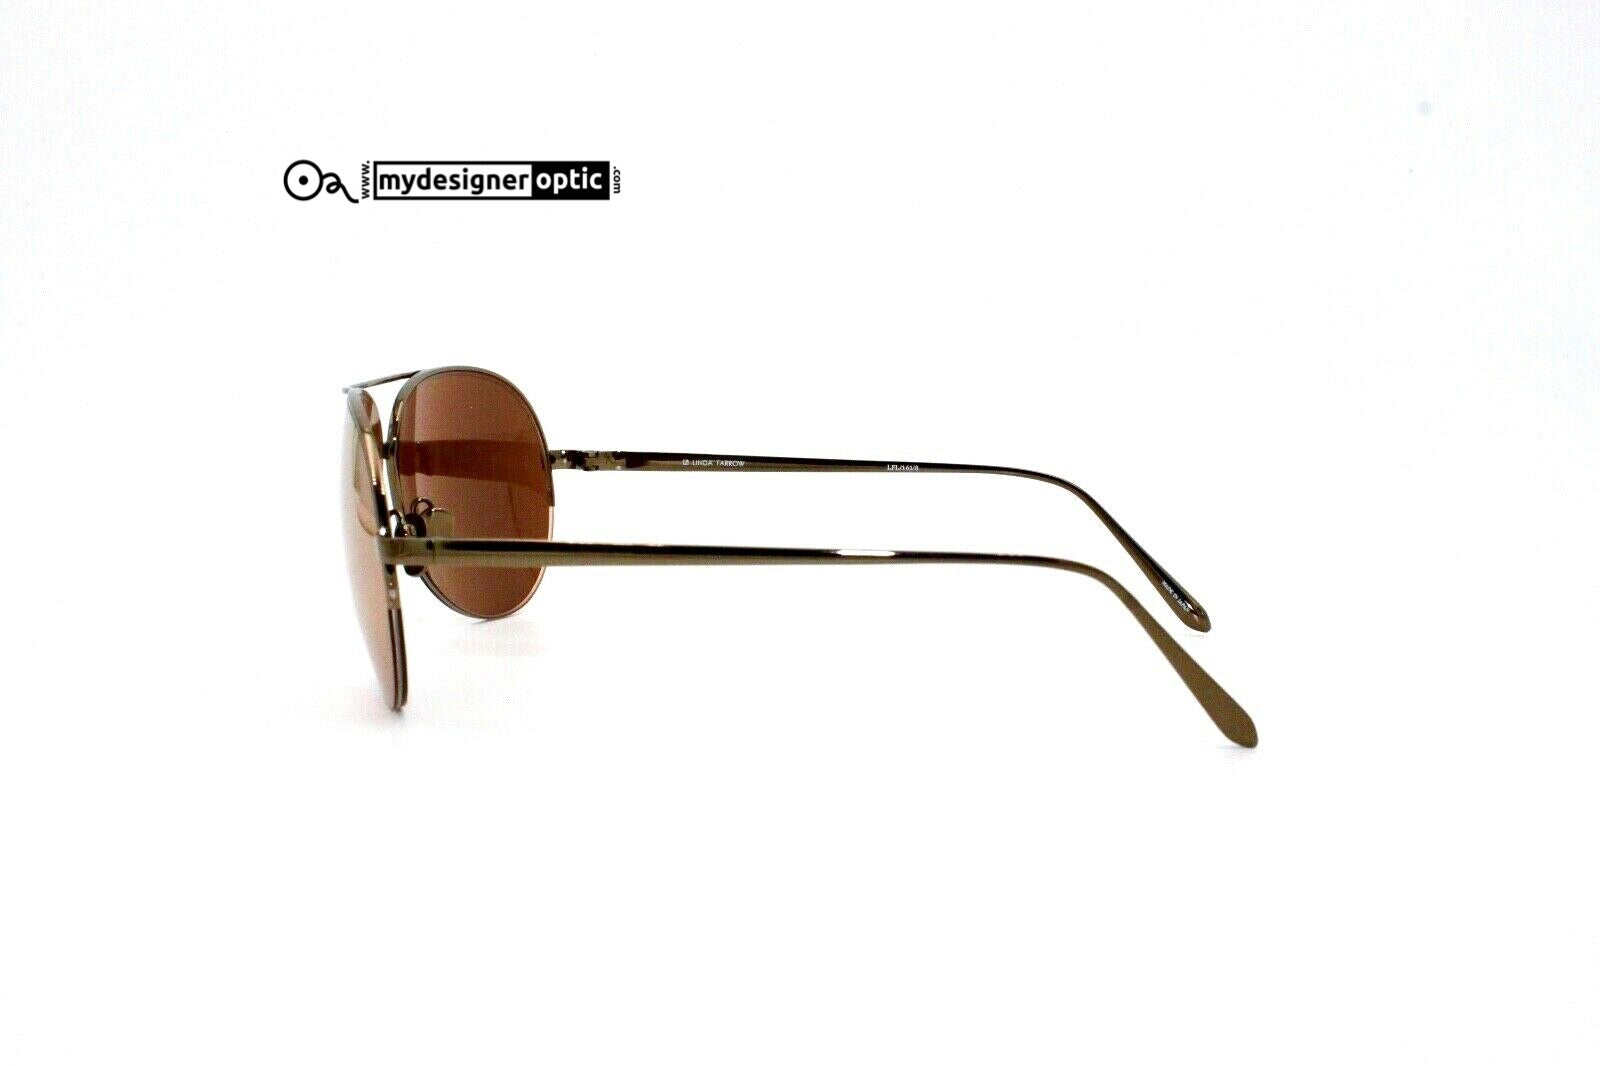 Linda Farrow Sunglasses LFL/161/8 63-12-140 Made in Japan - Mydesigneroptic